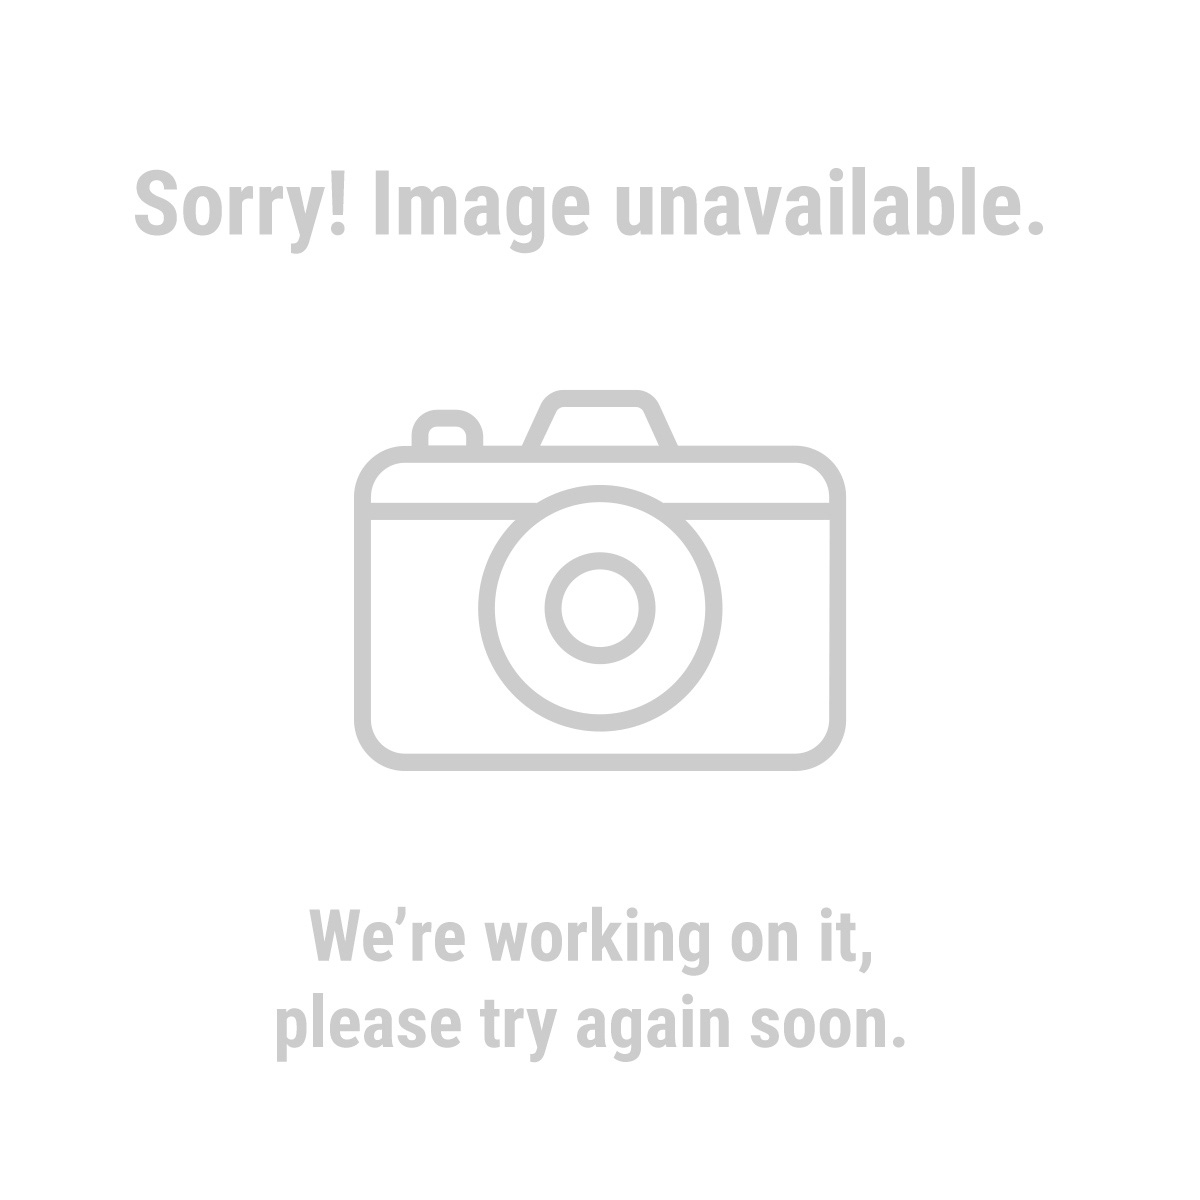 100 Pack Industrial Quality Single Edge Utility Blades